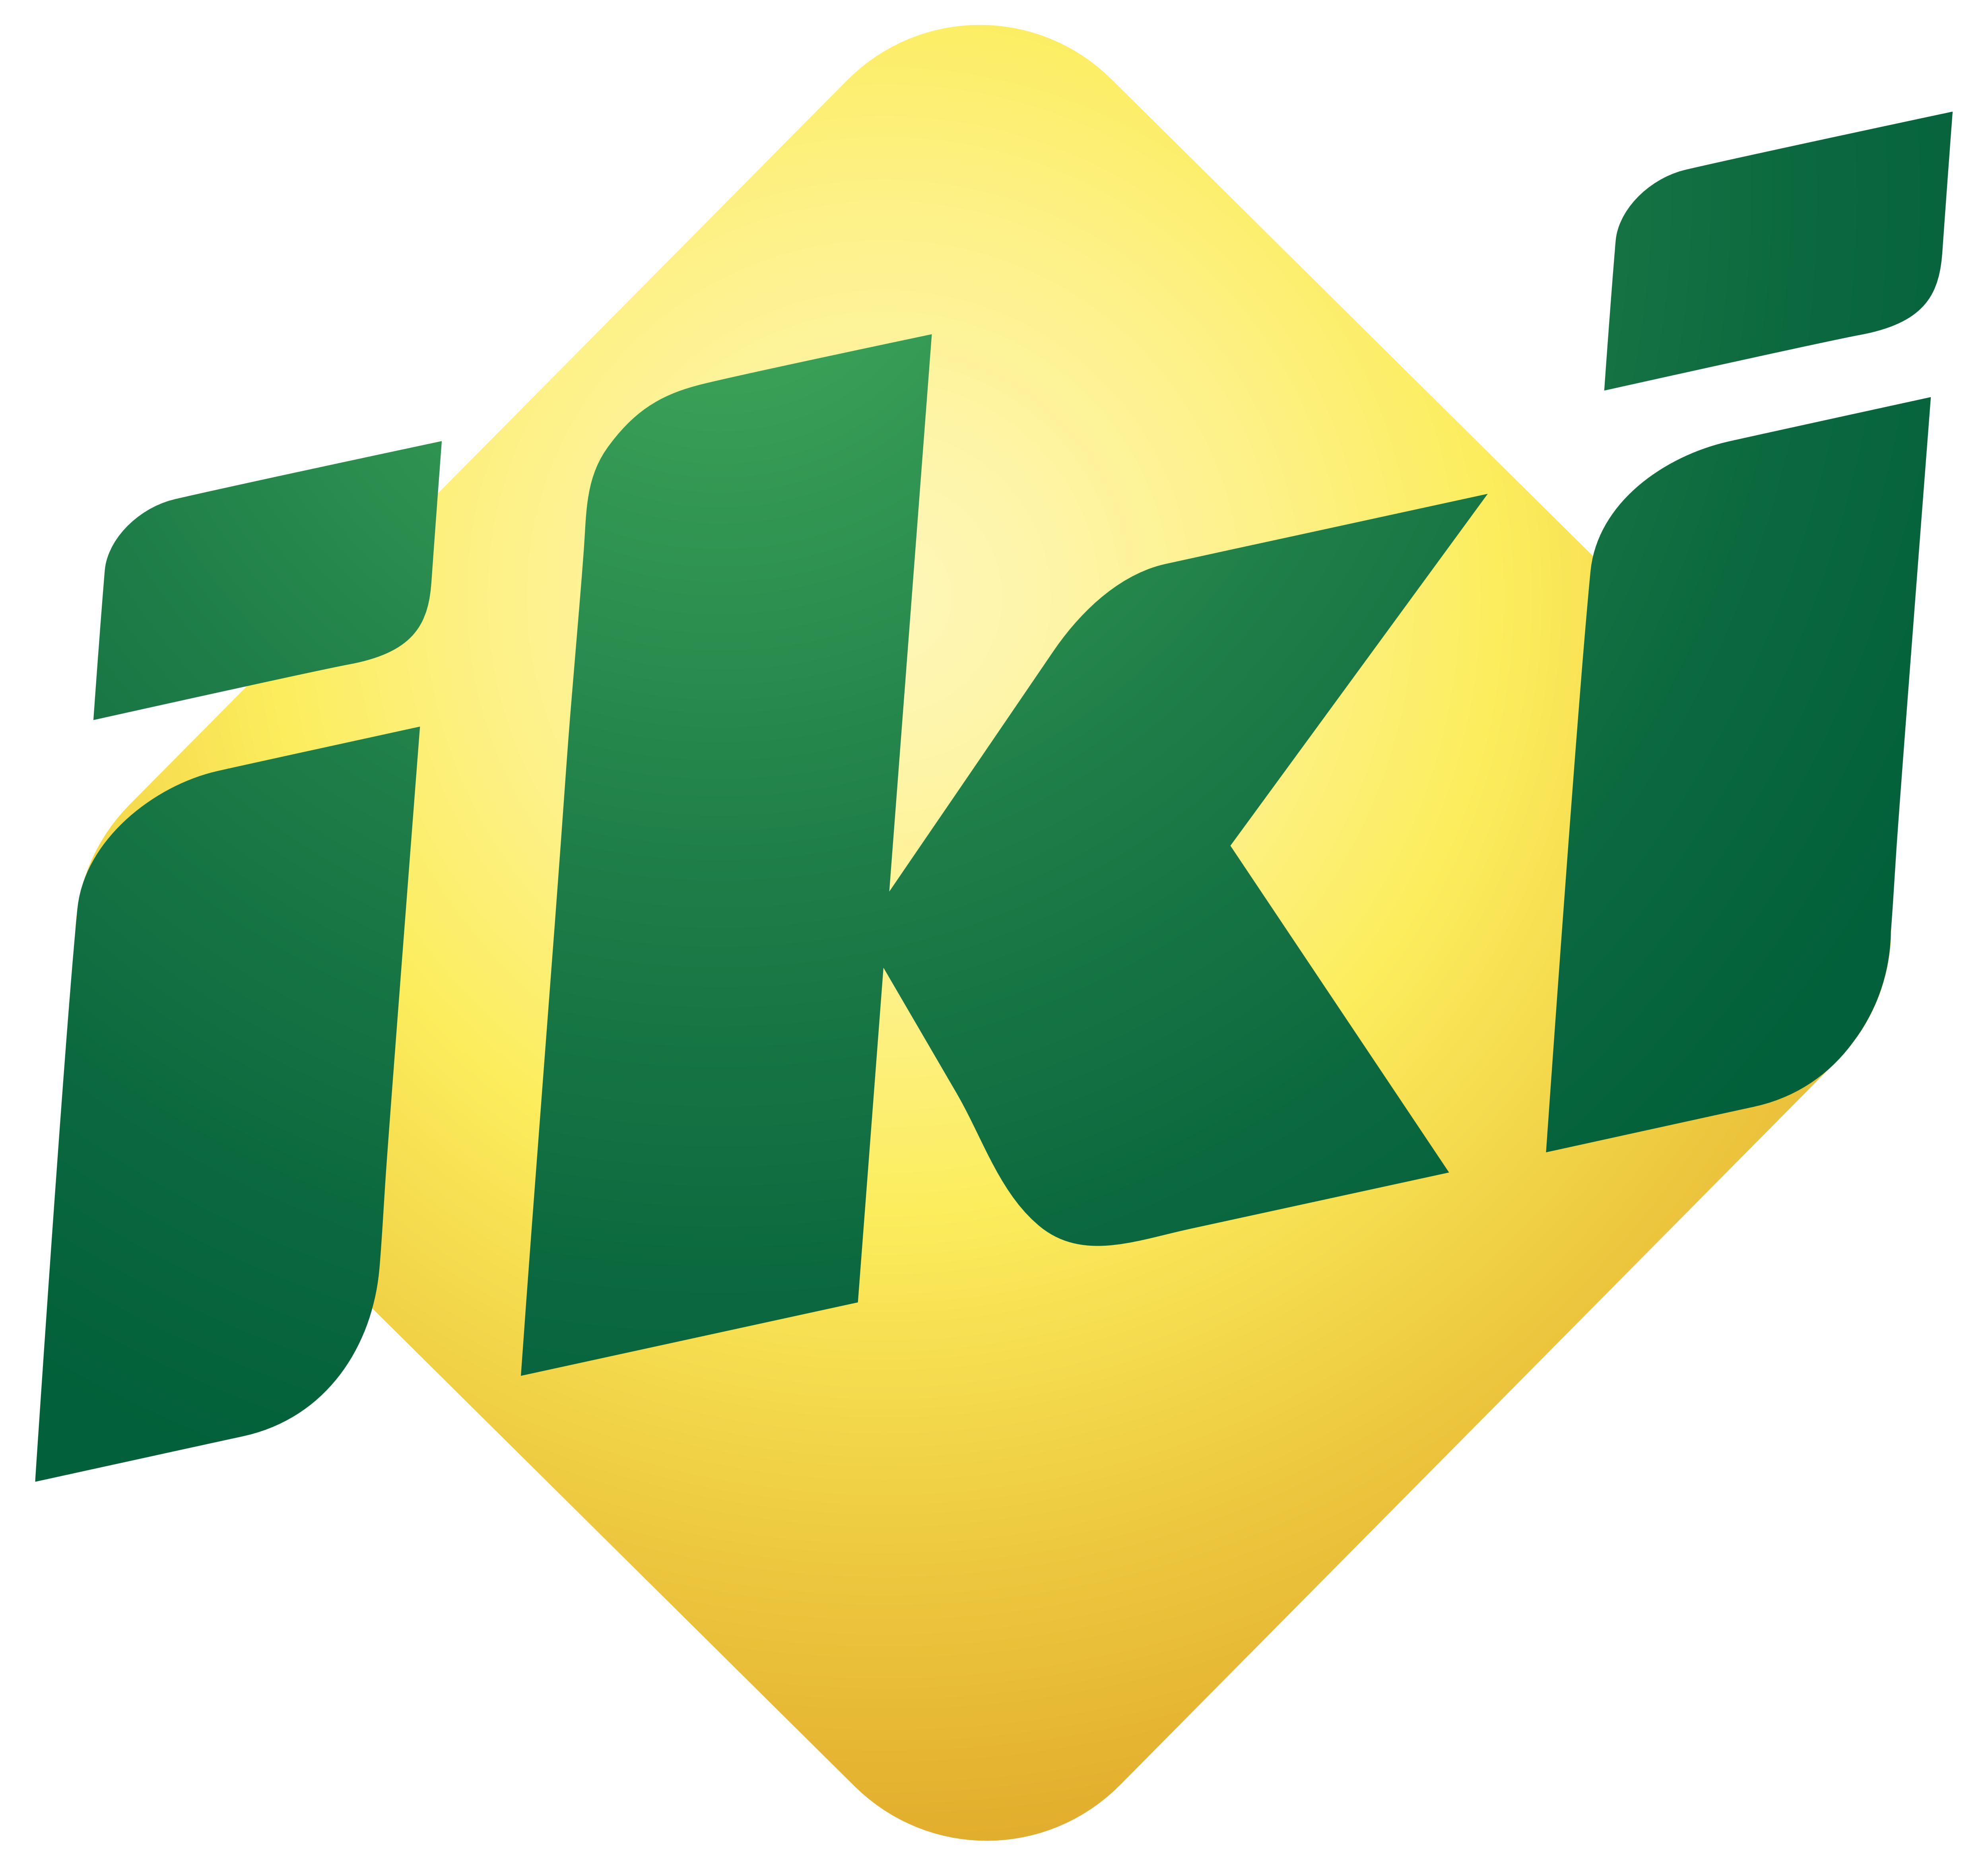 Iki logos download - Vitre plastique transparent leroy merlin ...